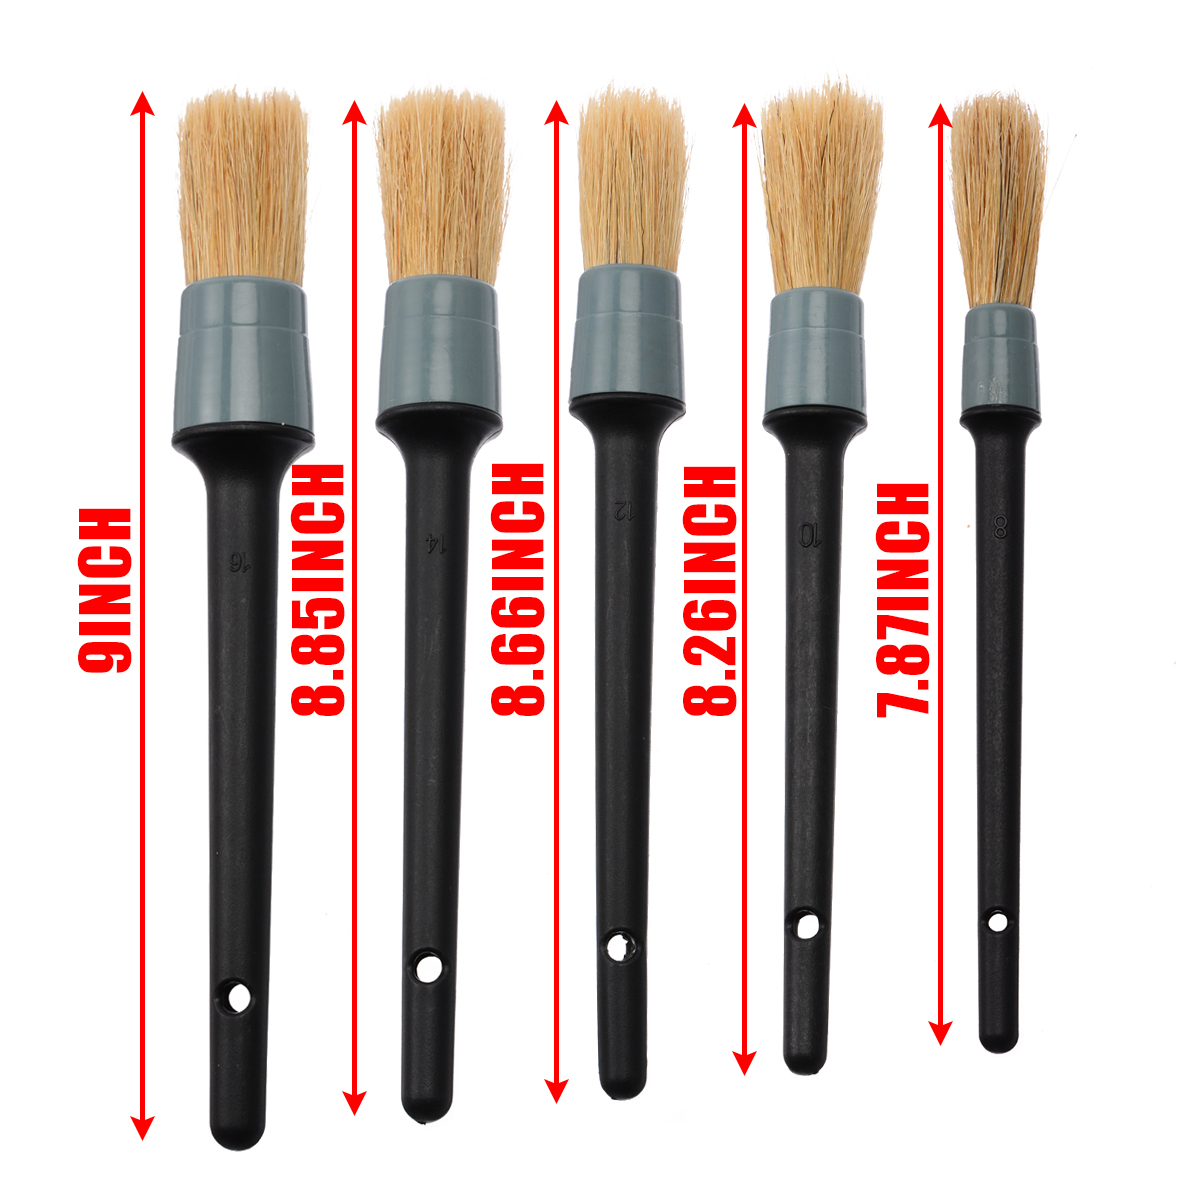 Image 4 - New Arrival 5pcs/set 5 Size Car Detailing Brush Cleaning Natural Boar Hair Brushes Auto Detail Tools-in Sponges, Cloths & Brushes from Automobiles & Motorcycles